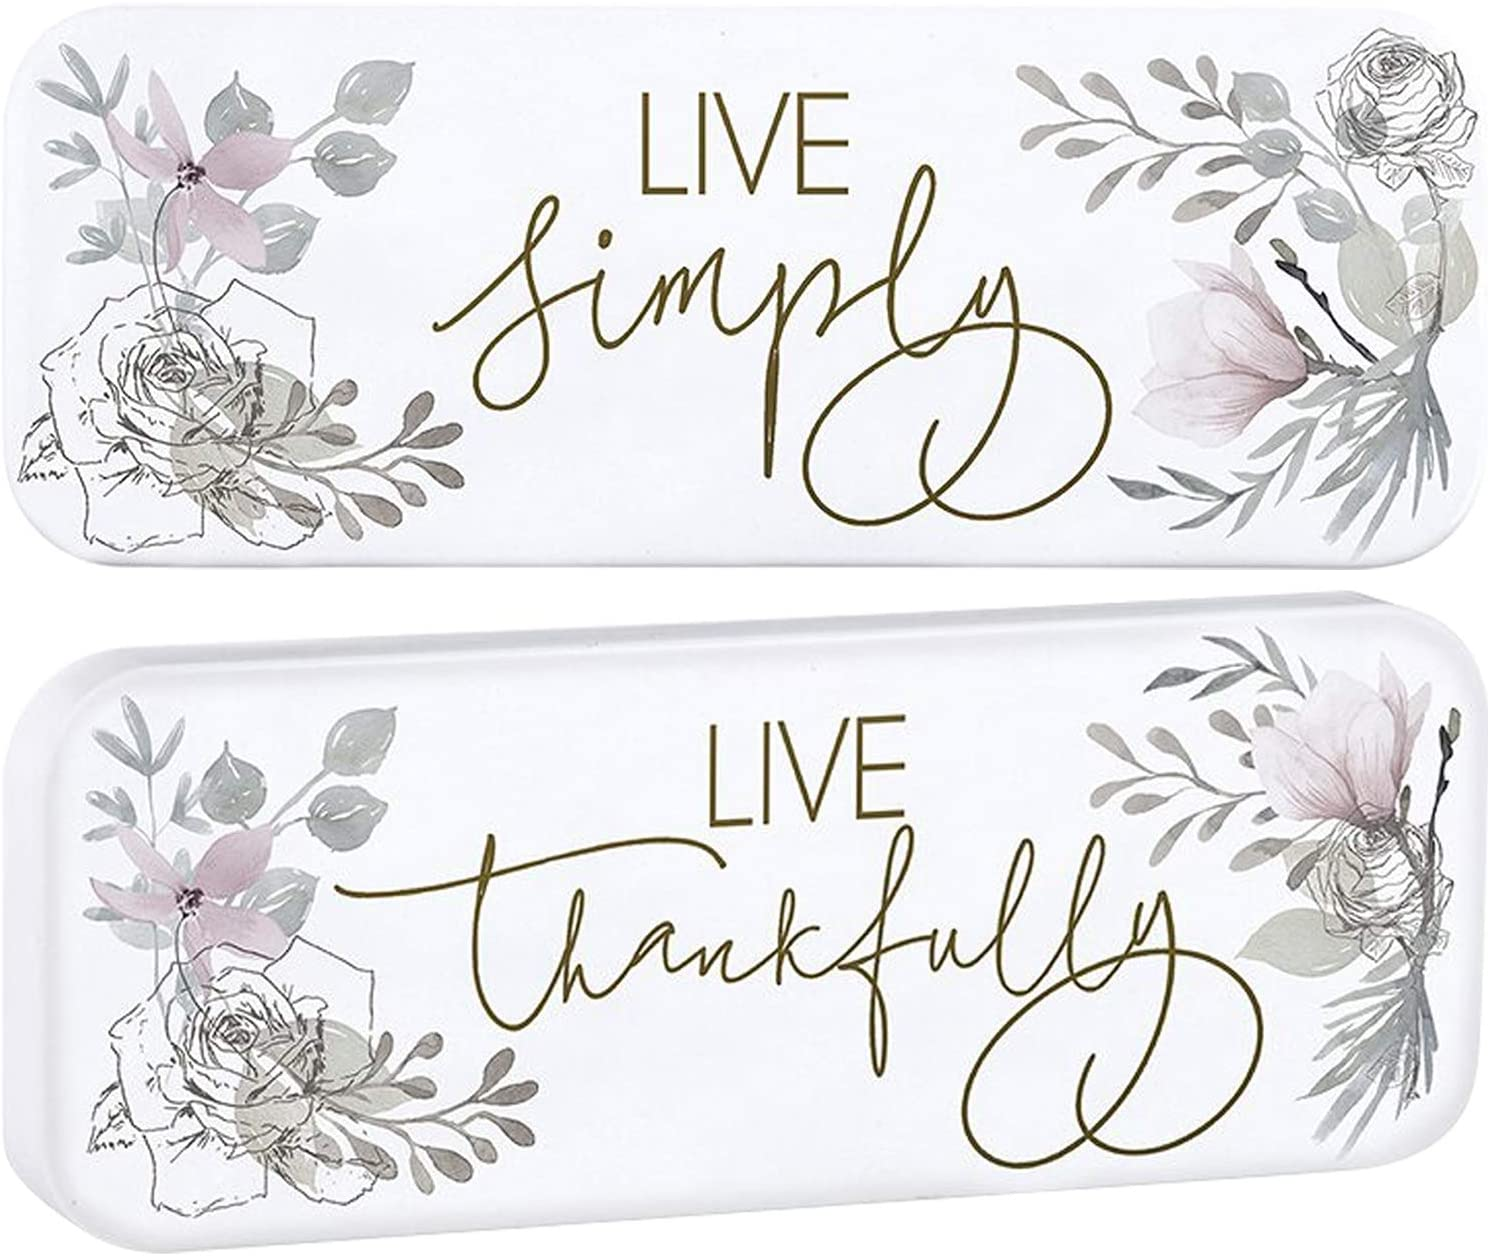 Live Simply, Live Thankfully Sign for Home, Kitchen, Office, Bedroom Decor | Hanging and Shelf Standing Feature | Set of 2 Decorative Enamel Signs with Inspirational Sayings